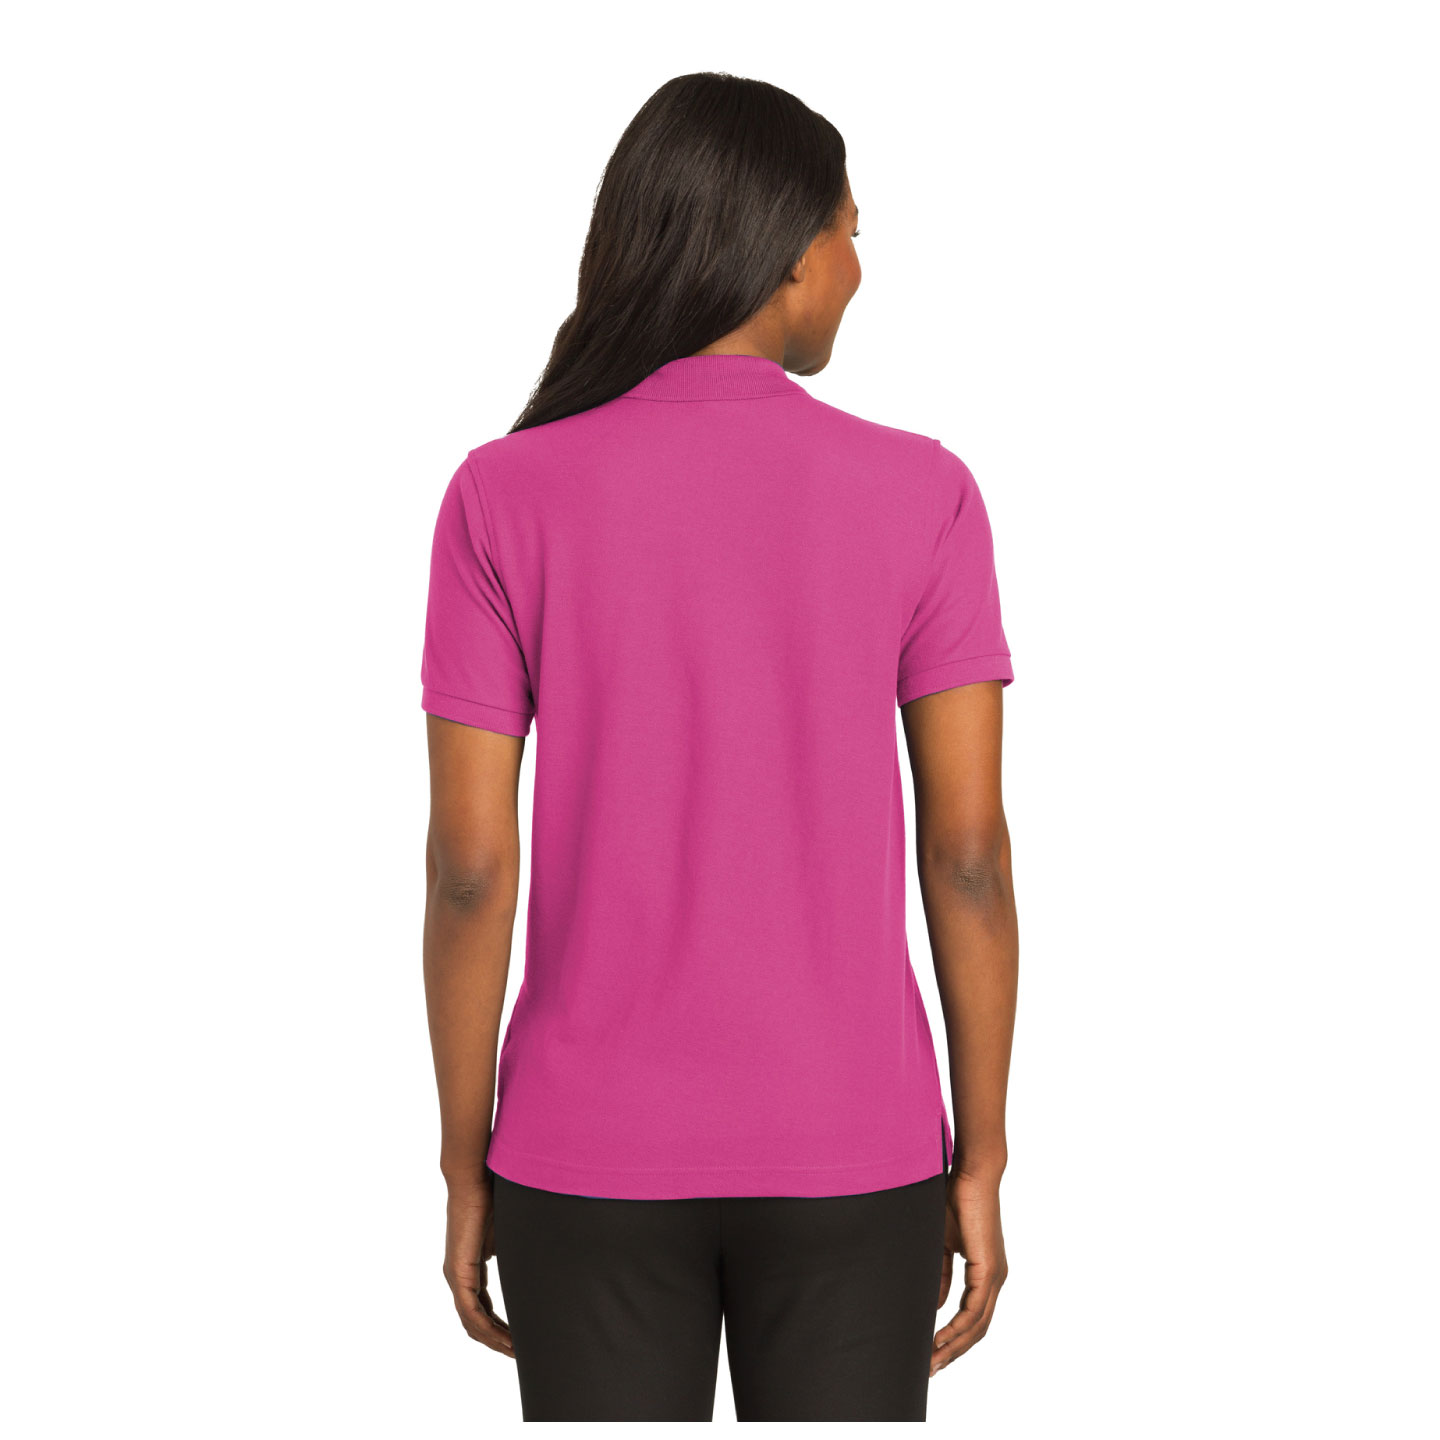 Ladies Pique Polo Shirt - RCL4108